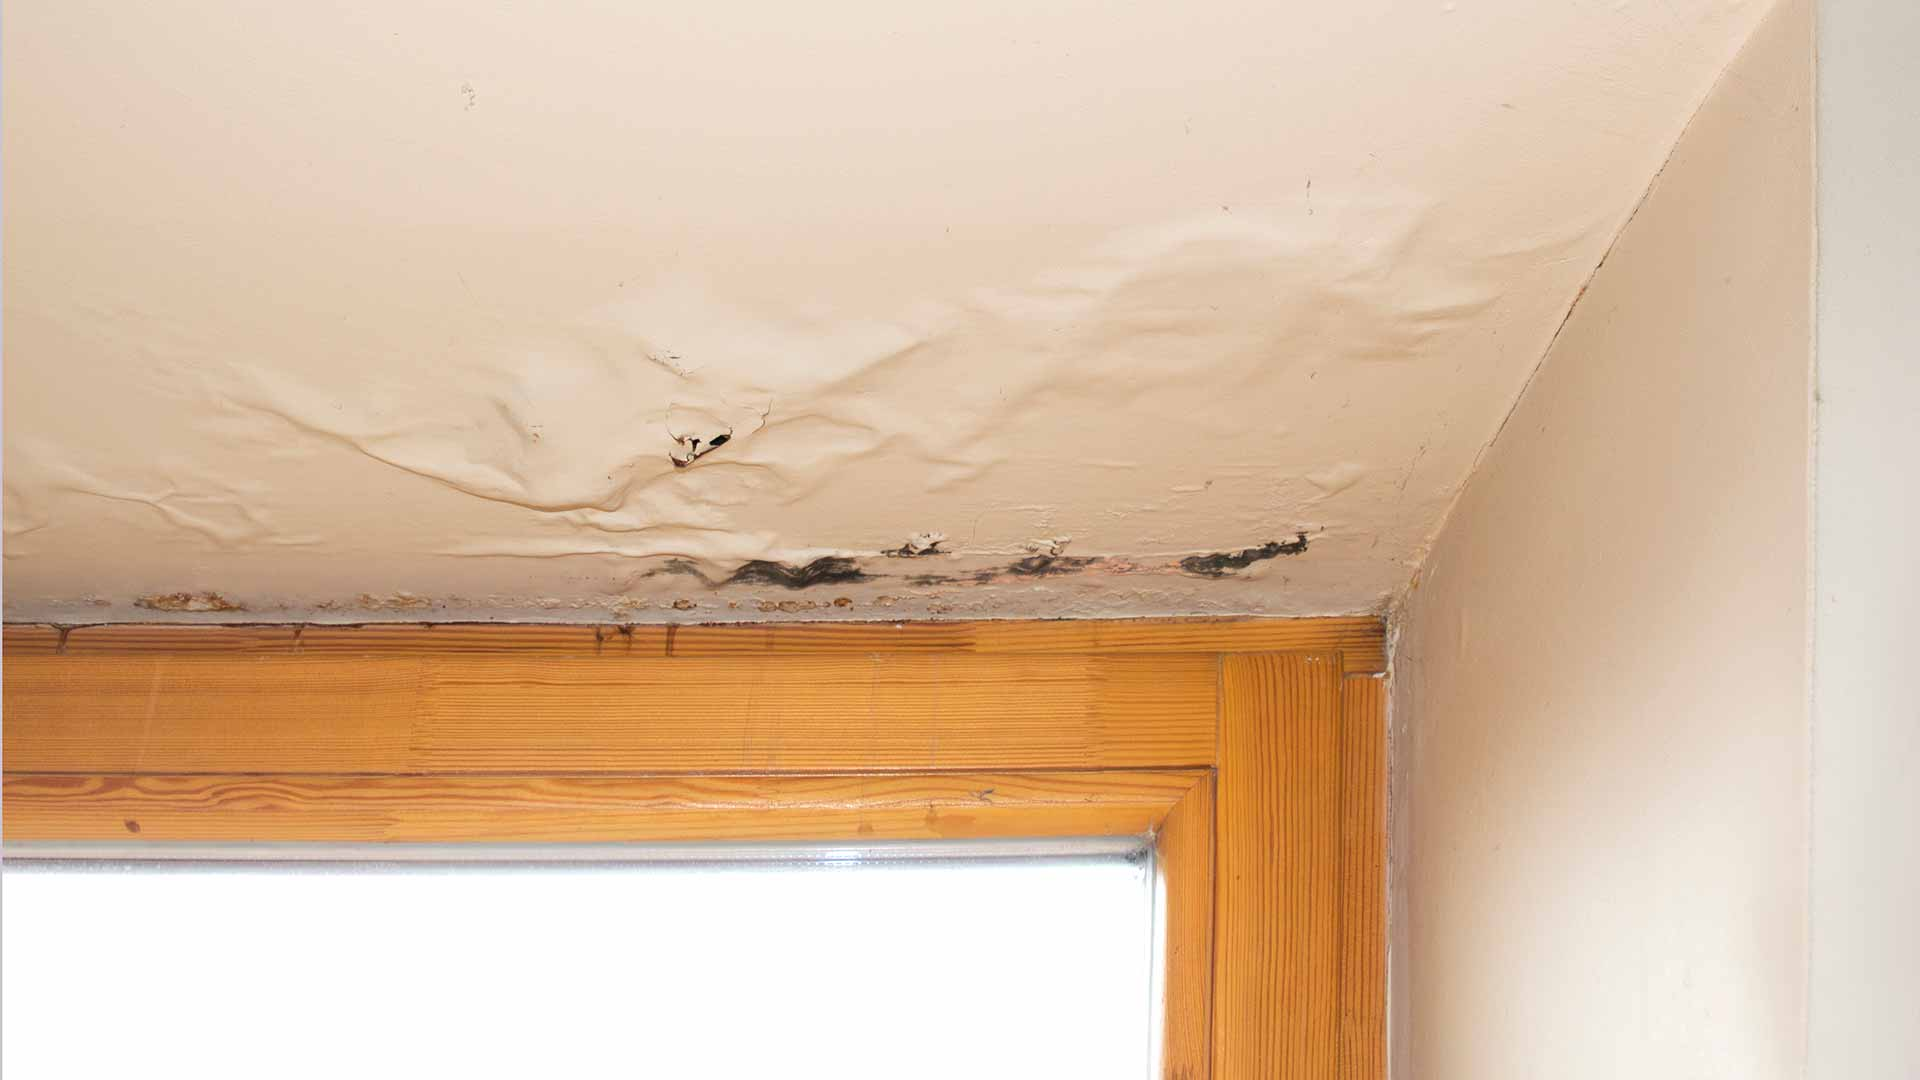 Water Damage Restoration Services In Central Florida